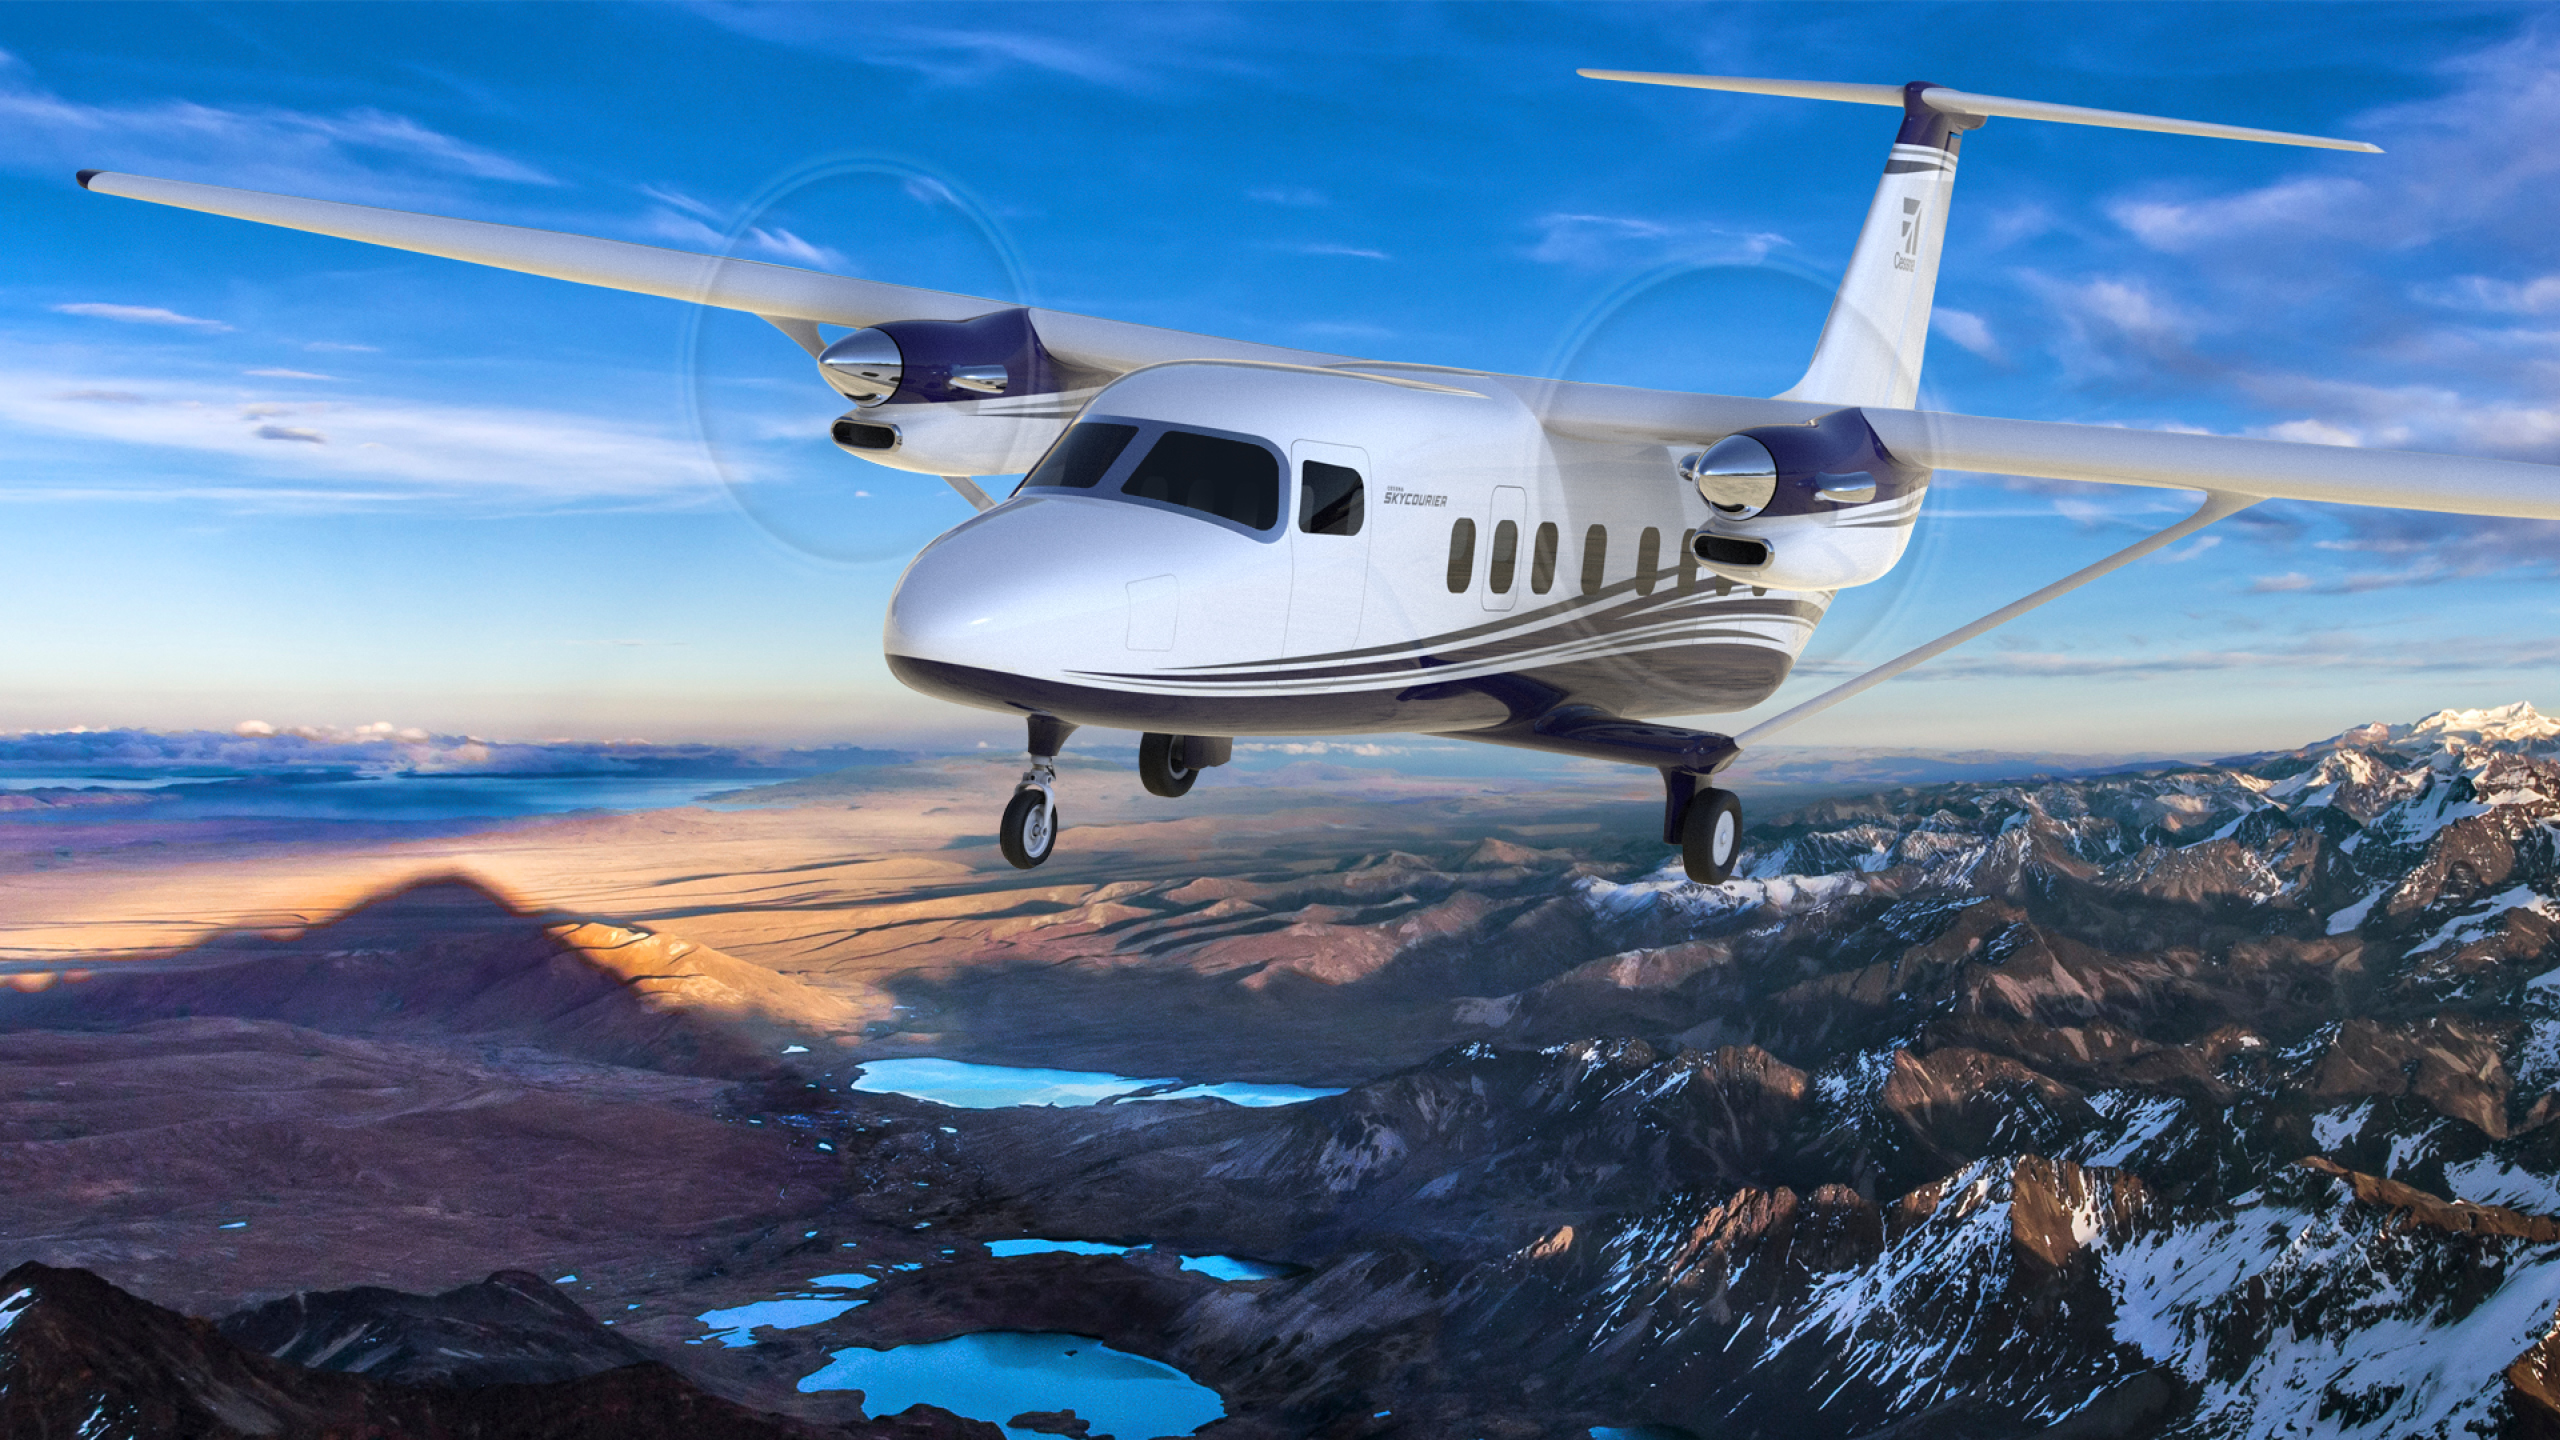 Cessna's new SkyCourier regional cargo plane will launch with FedEx. Image: Textron